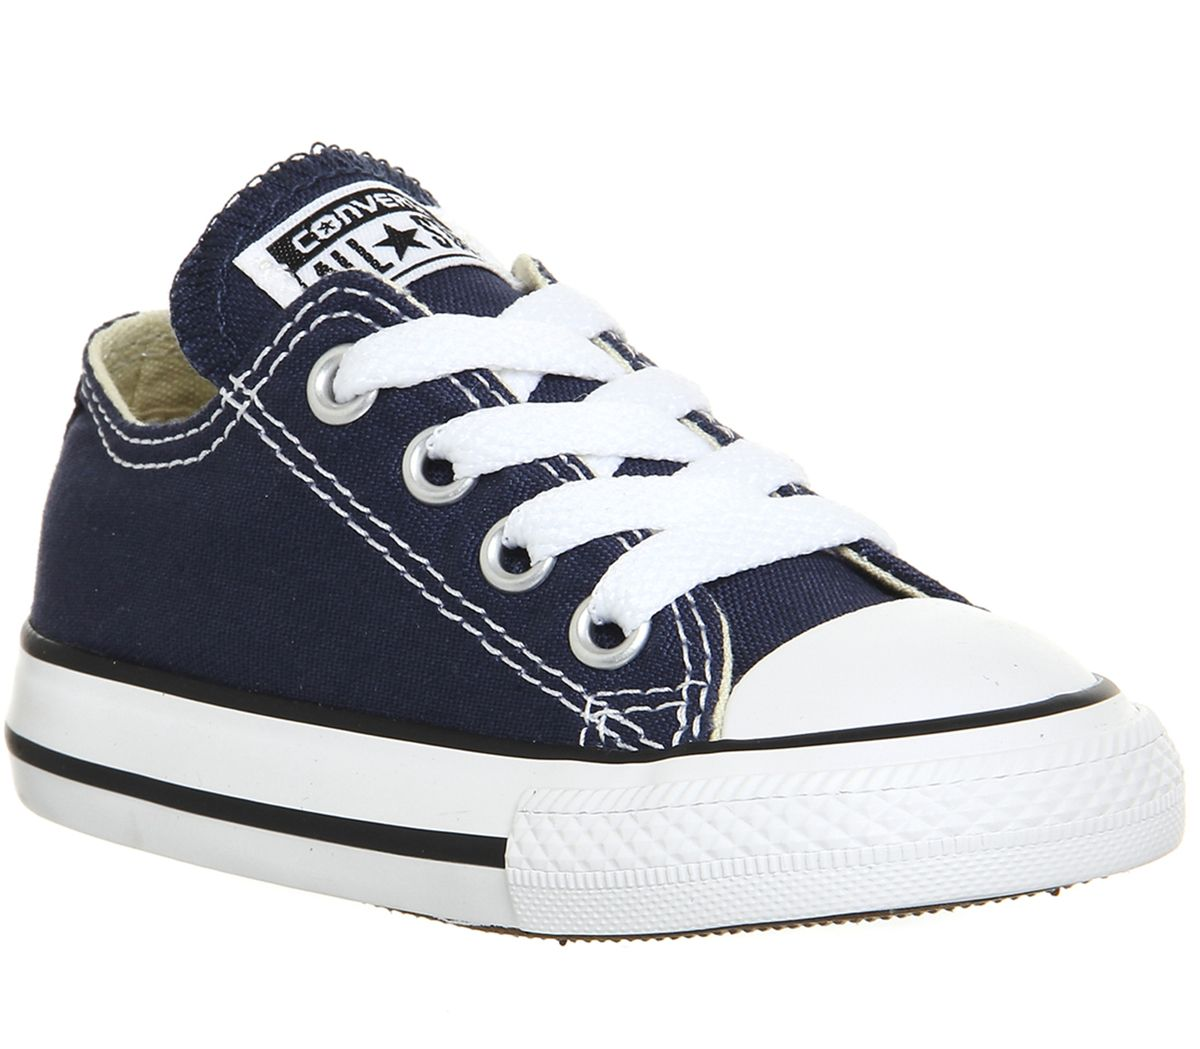 Details about Kids Converse All Star Low Infant Shoes Navy Kids